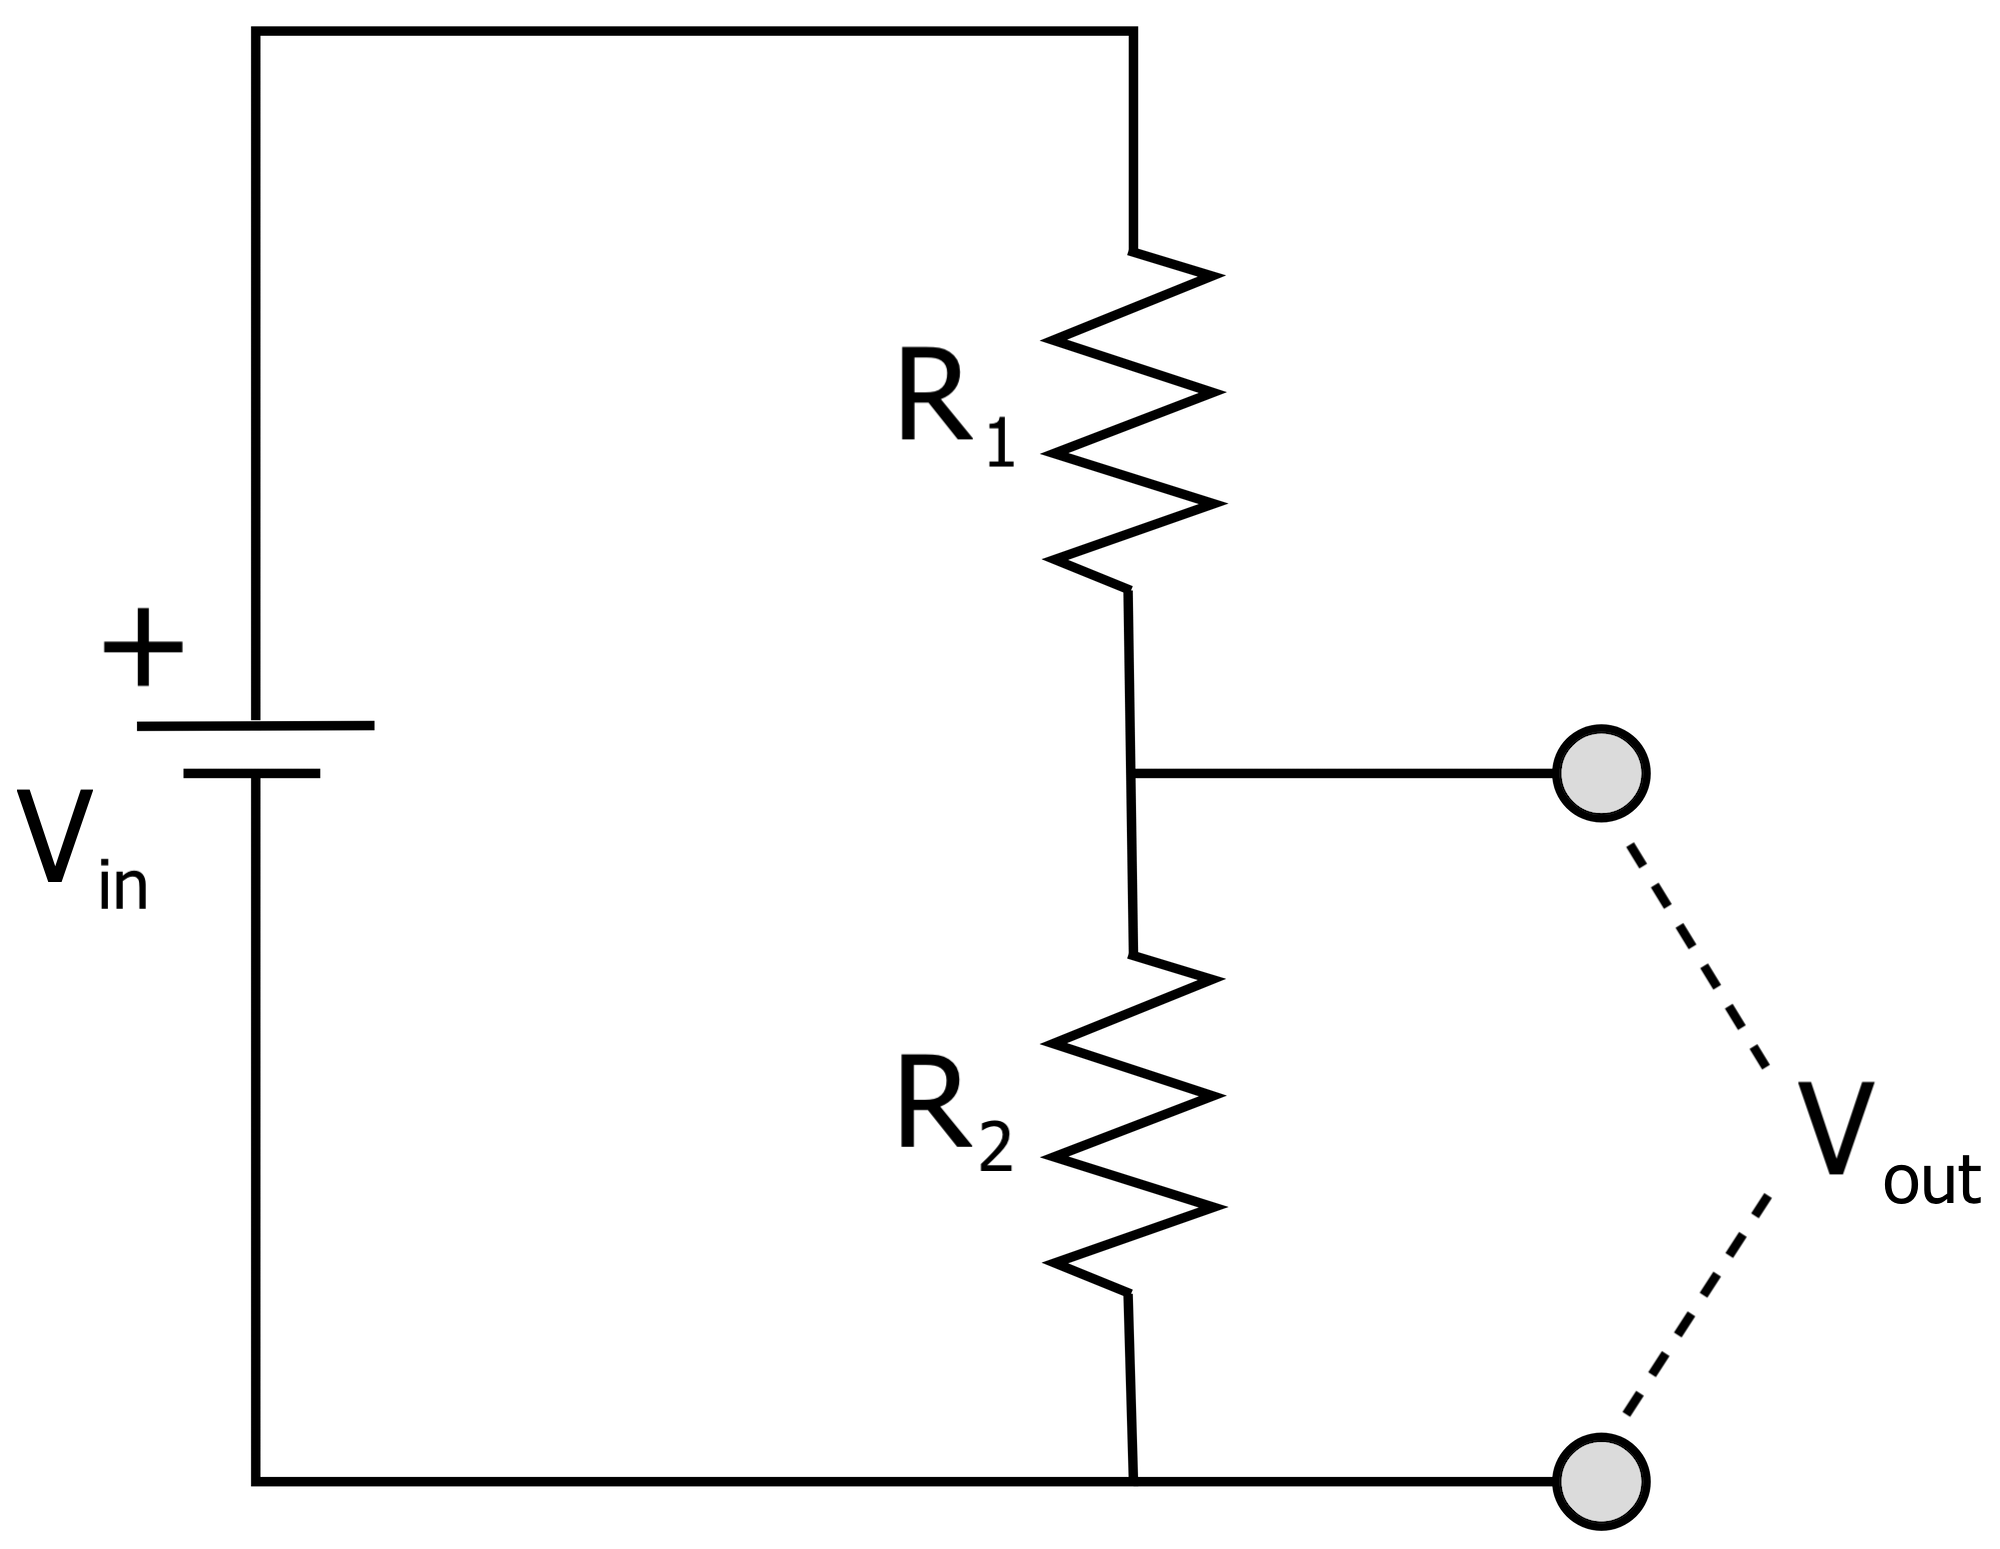 voltage divider circuit with two resistors